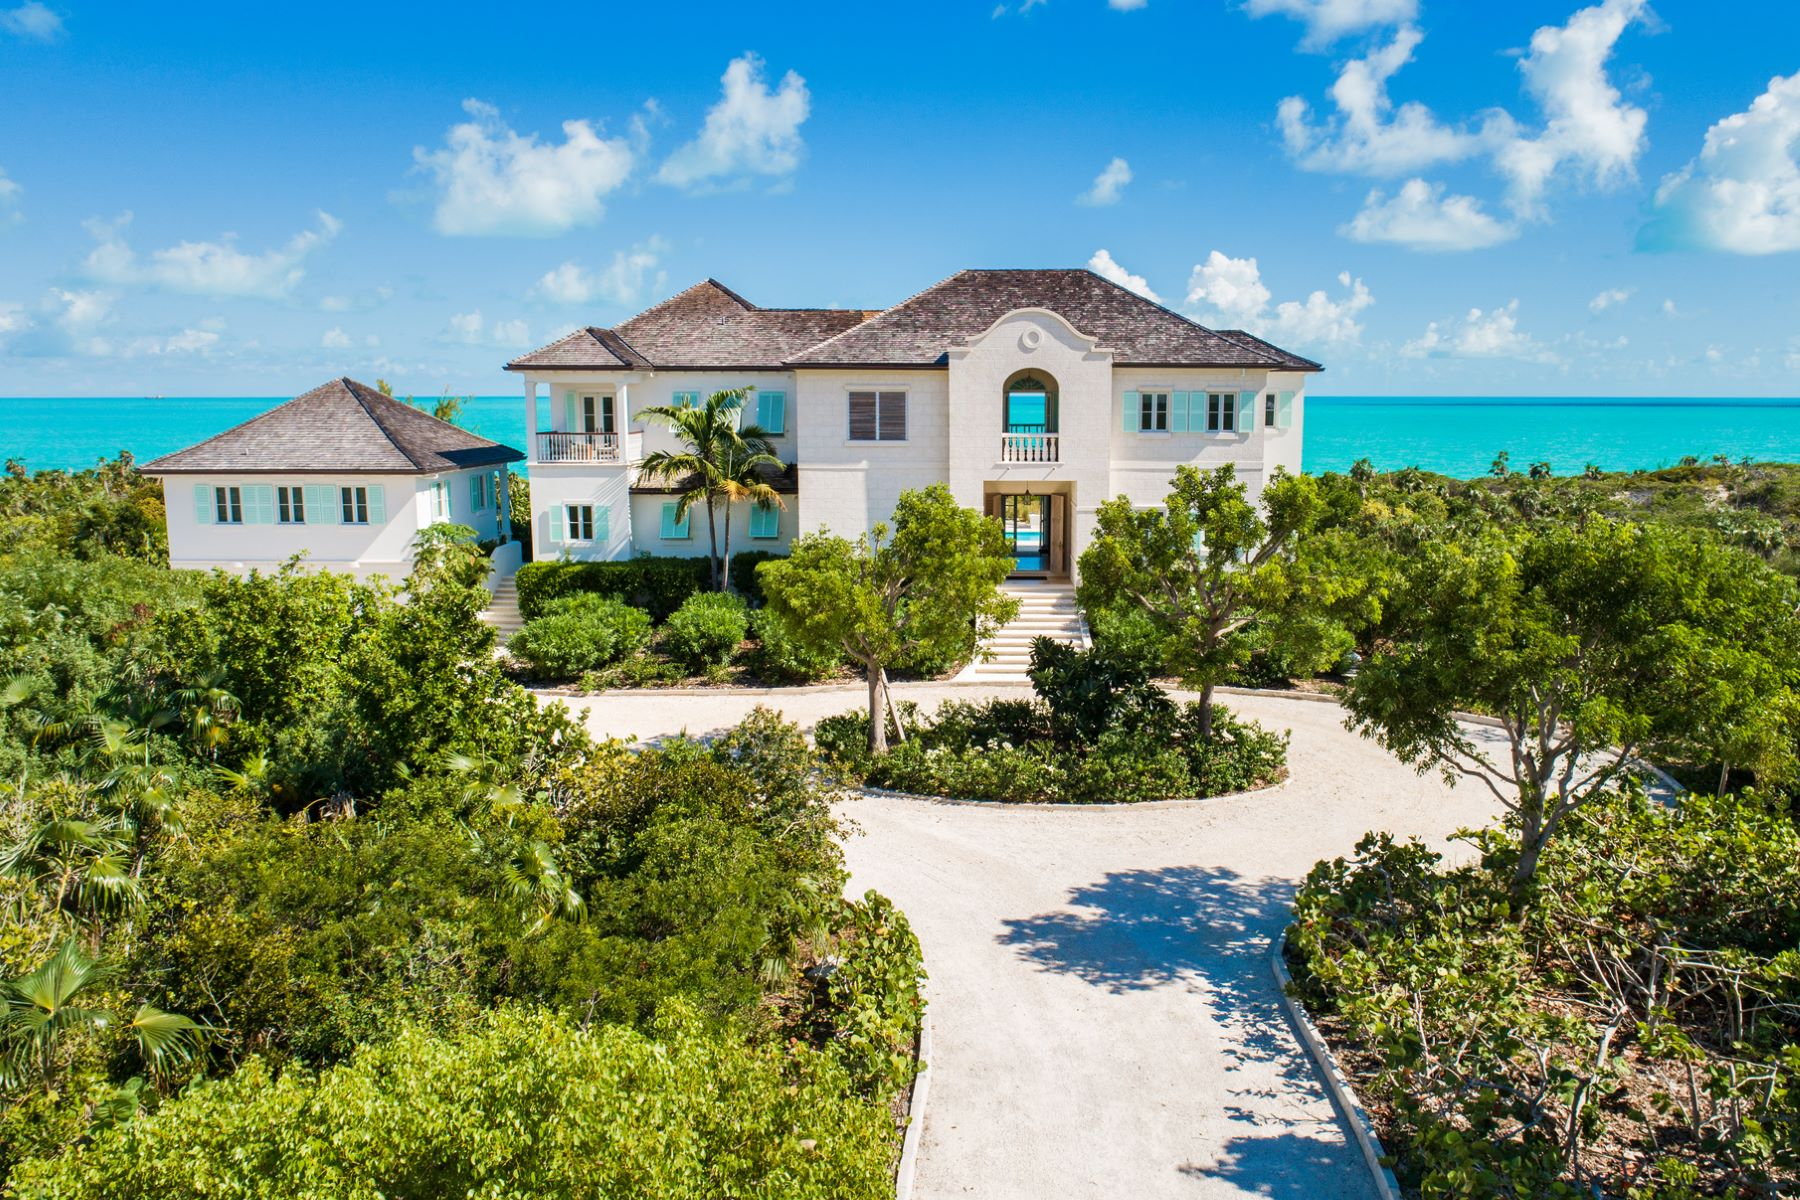 Casa Unifamiliar por un Venta en Long Bay House Long Bay House, Long Bay Beach Drive Long Bay, Providenciales TKCA 1ZZ Islas Turcas Y Caicos